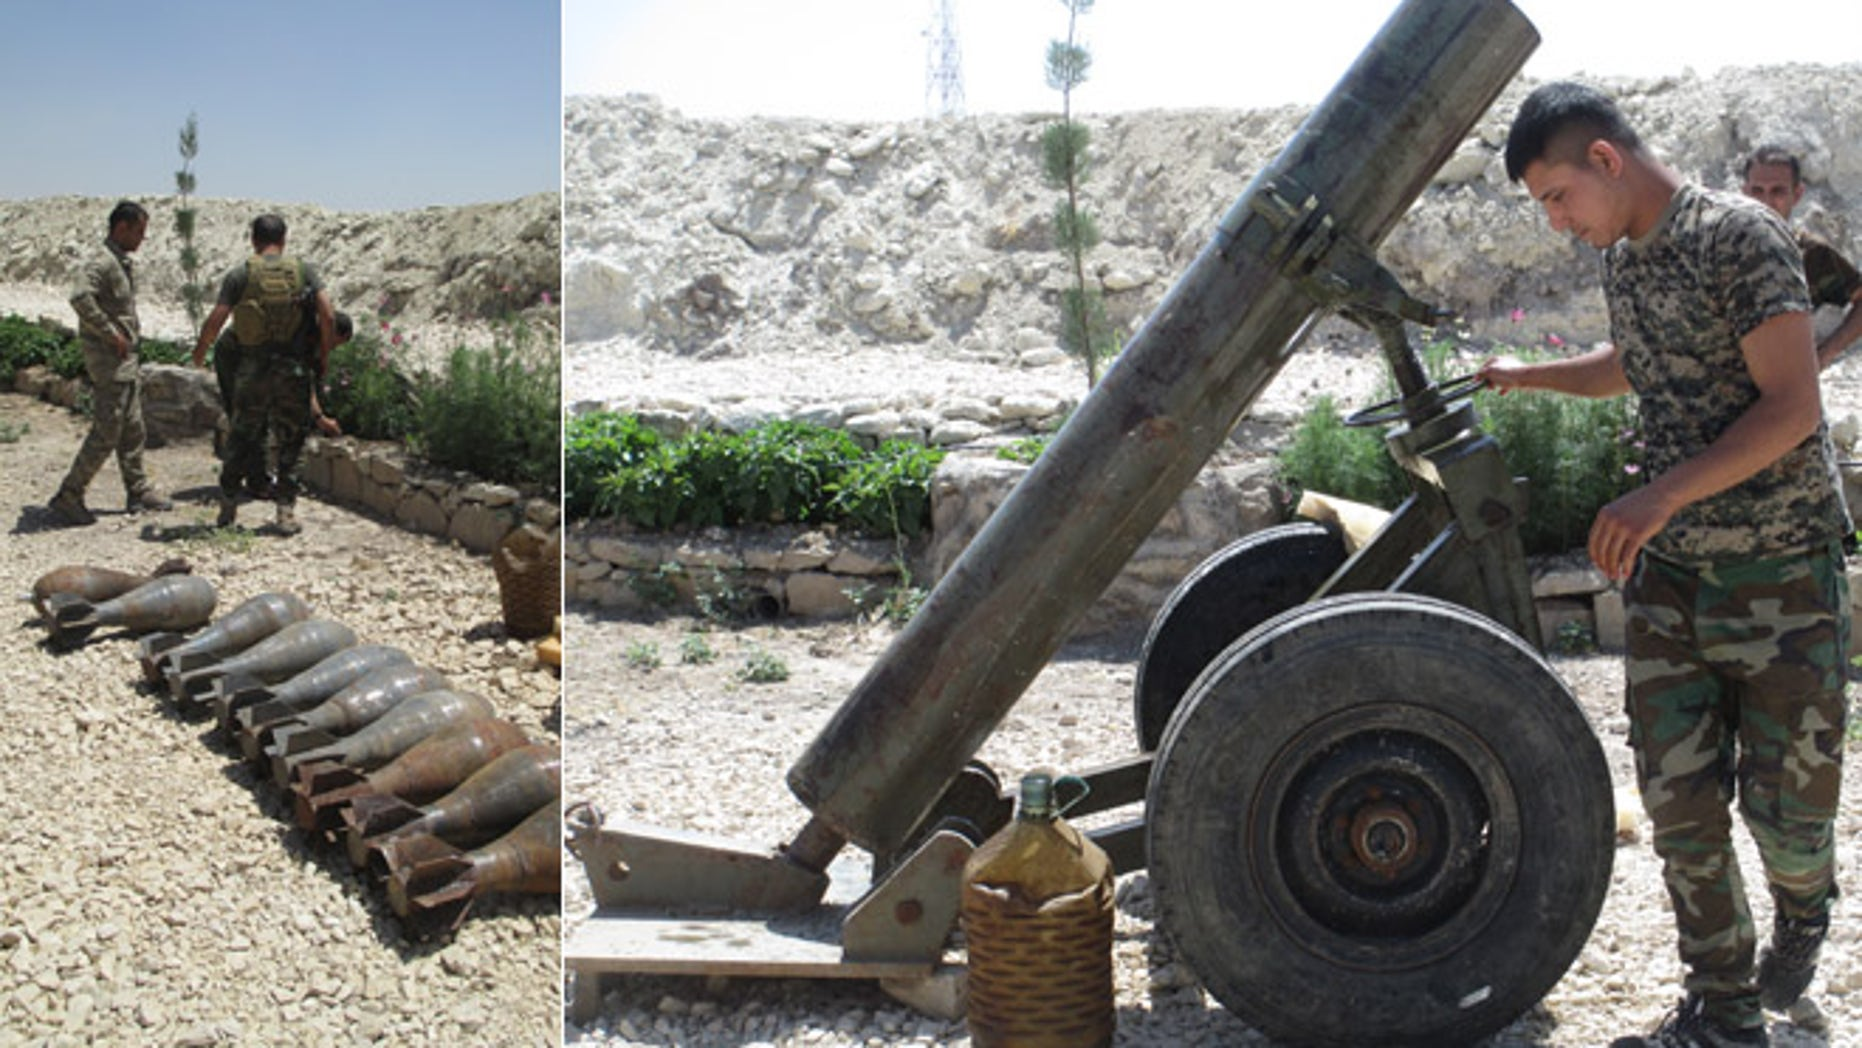 It took the Kurdish fighters days to figure out how to fire the homemade mortar, but when they did, it worked. (FoxNews.com)